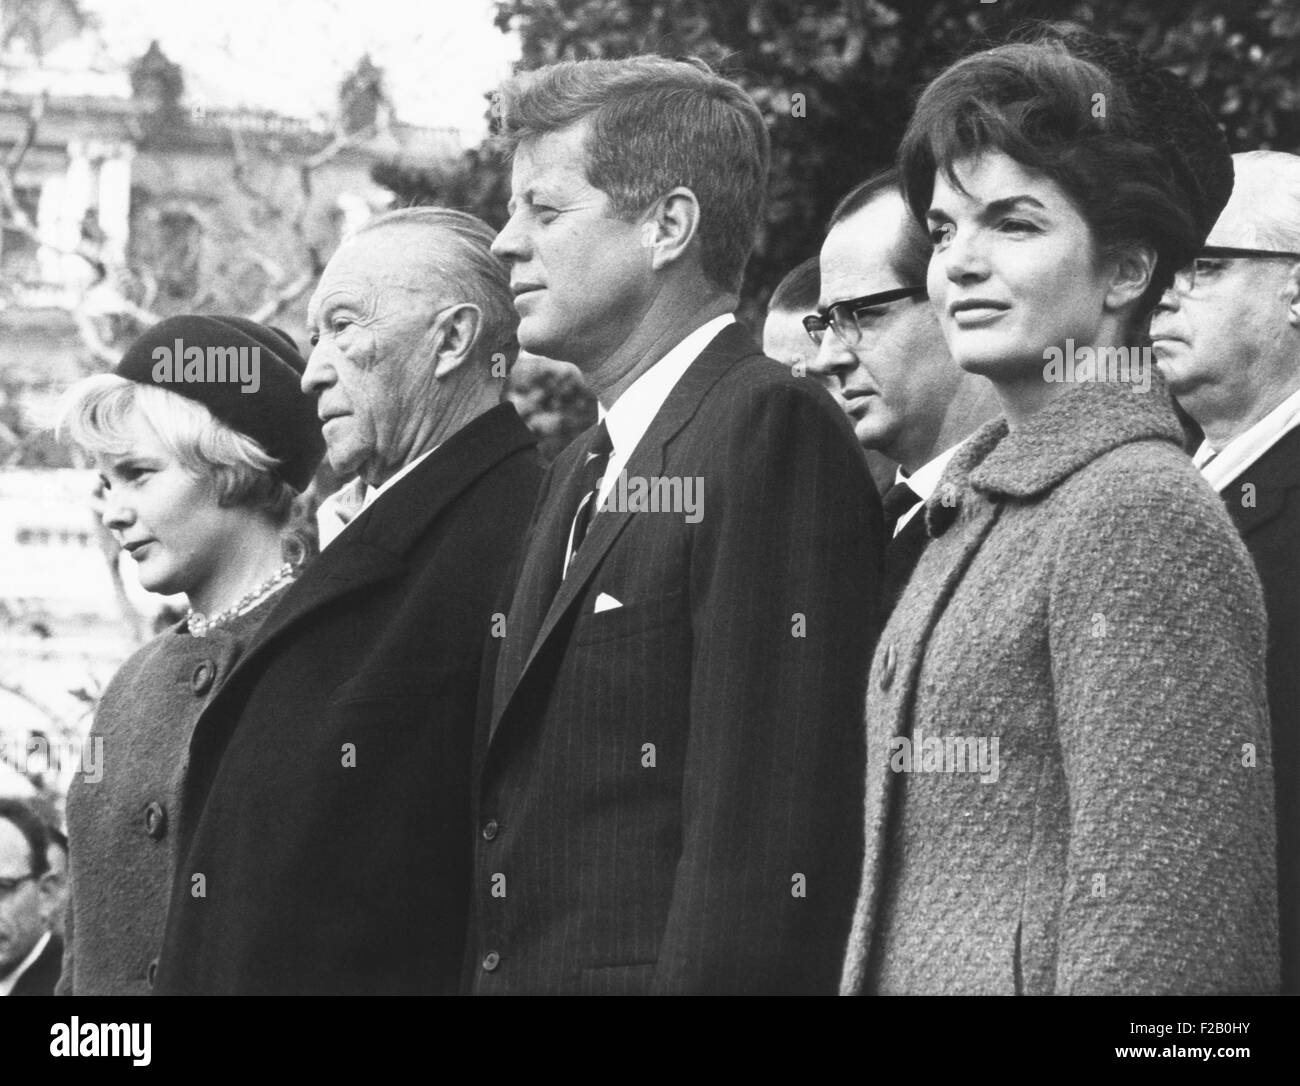 West German Chancellor Konrad Adenauer received full military honors at White House Ceremony. Nov. 4, 1962. L-R: - Stock Image